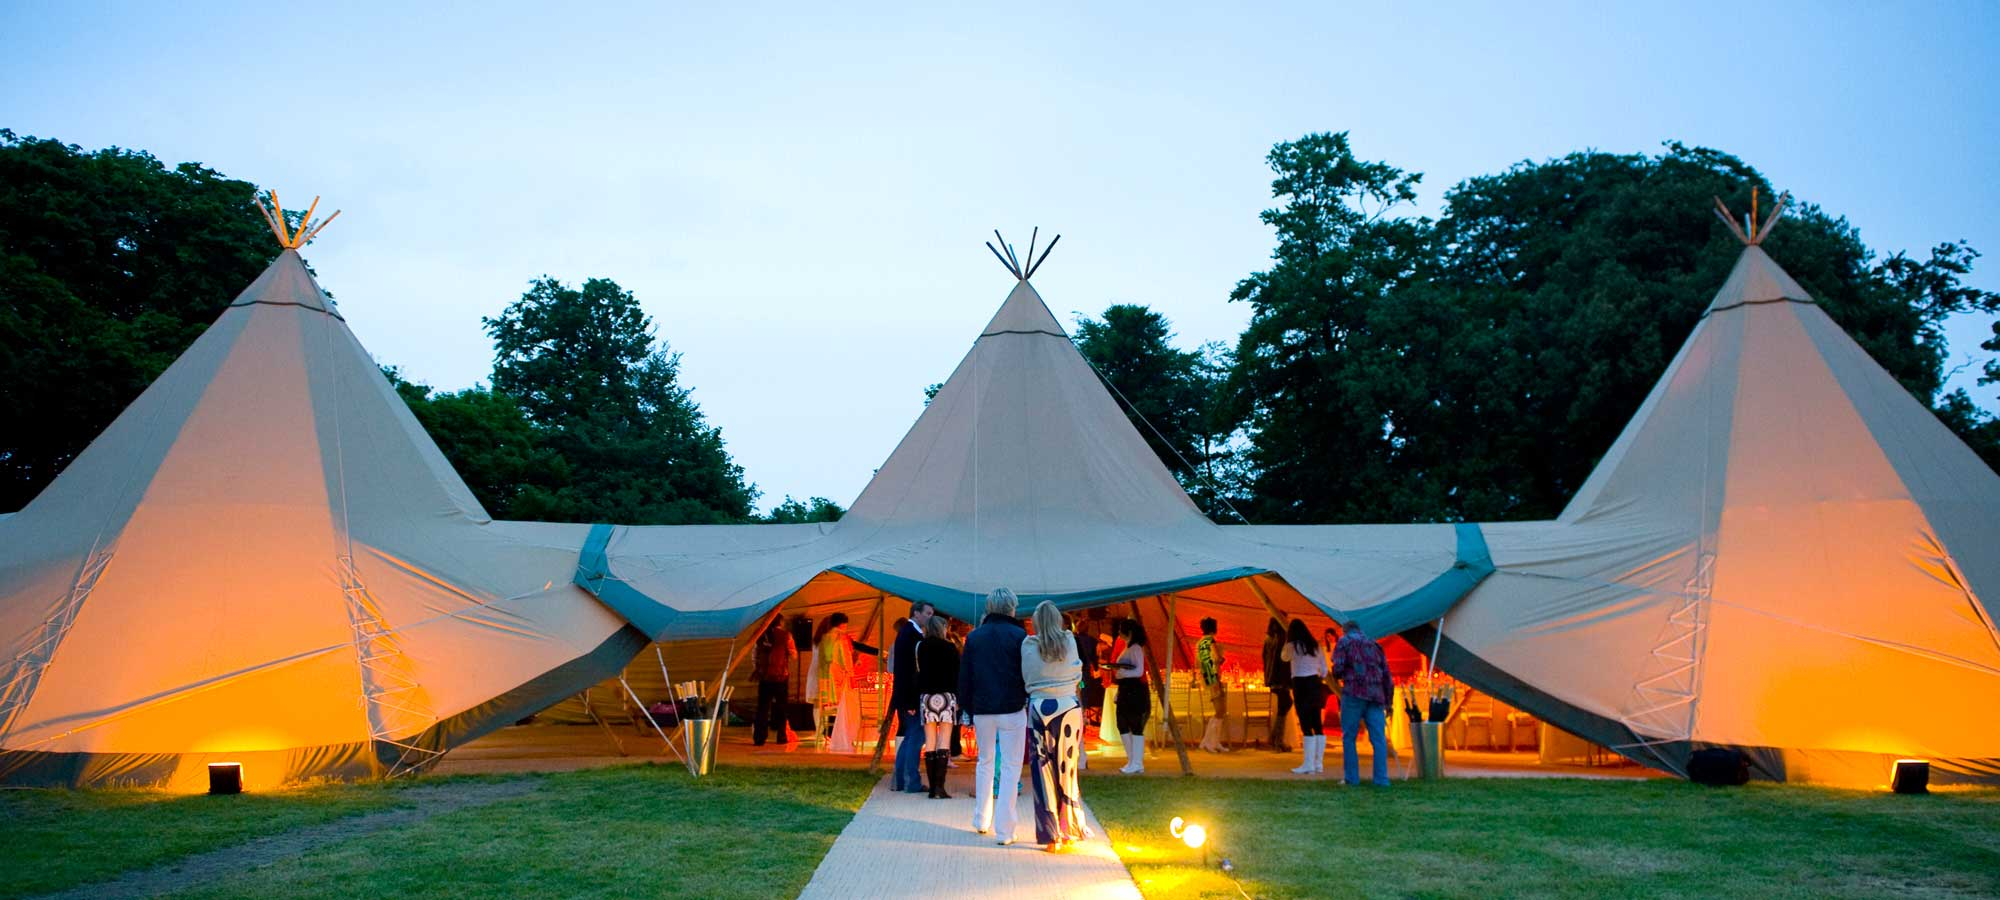 Tentipi event with guests - event tipis to purchase